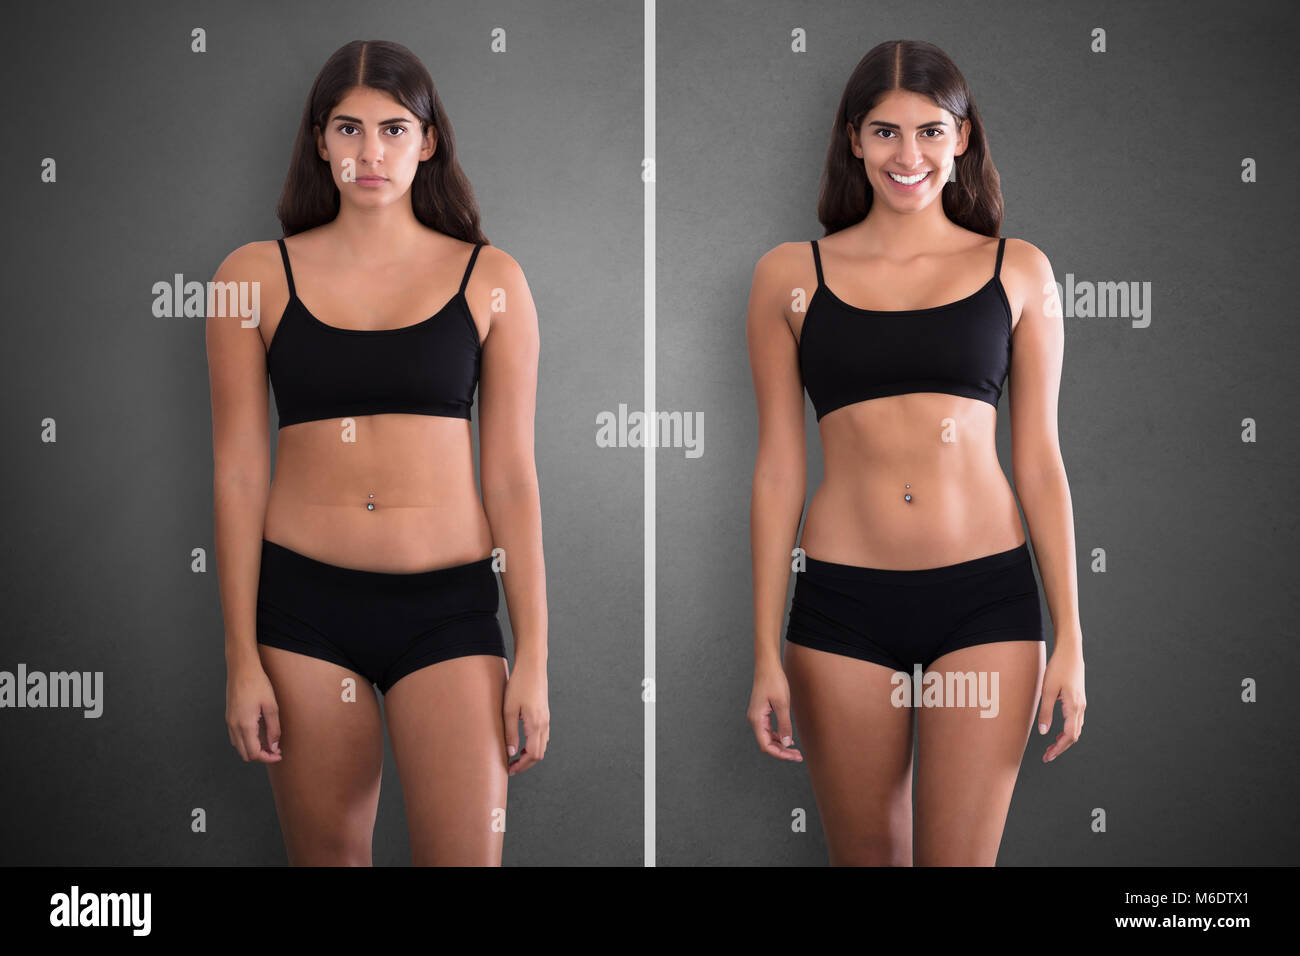 Before After Diet Stock Photos & Before After Diet Stock Images - Alamy